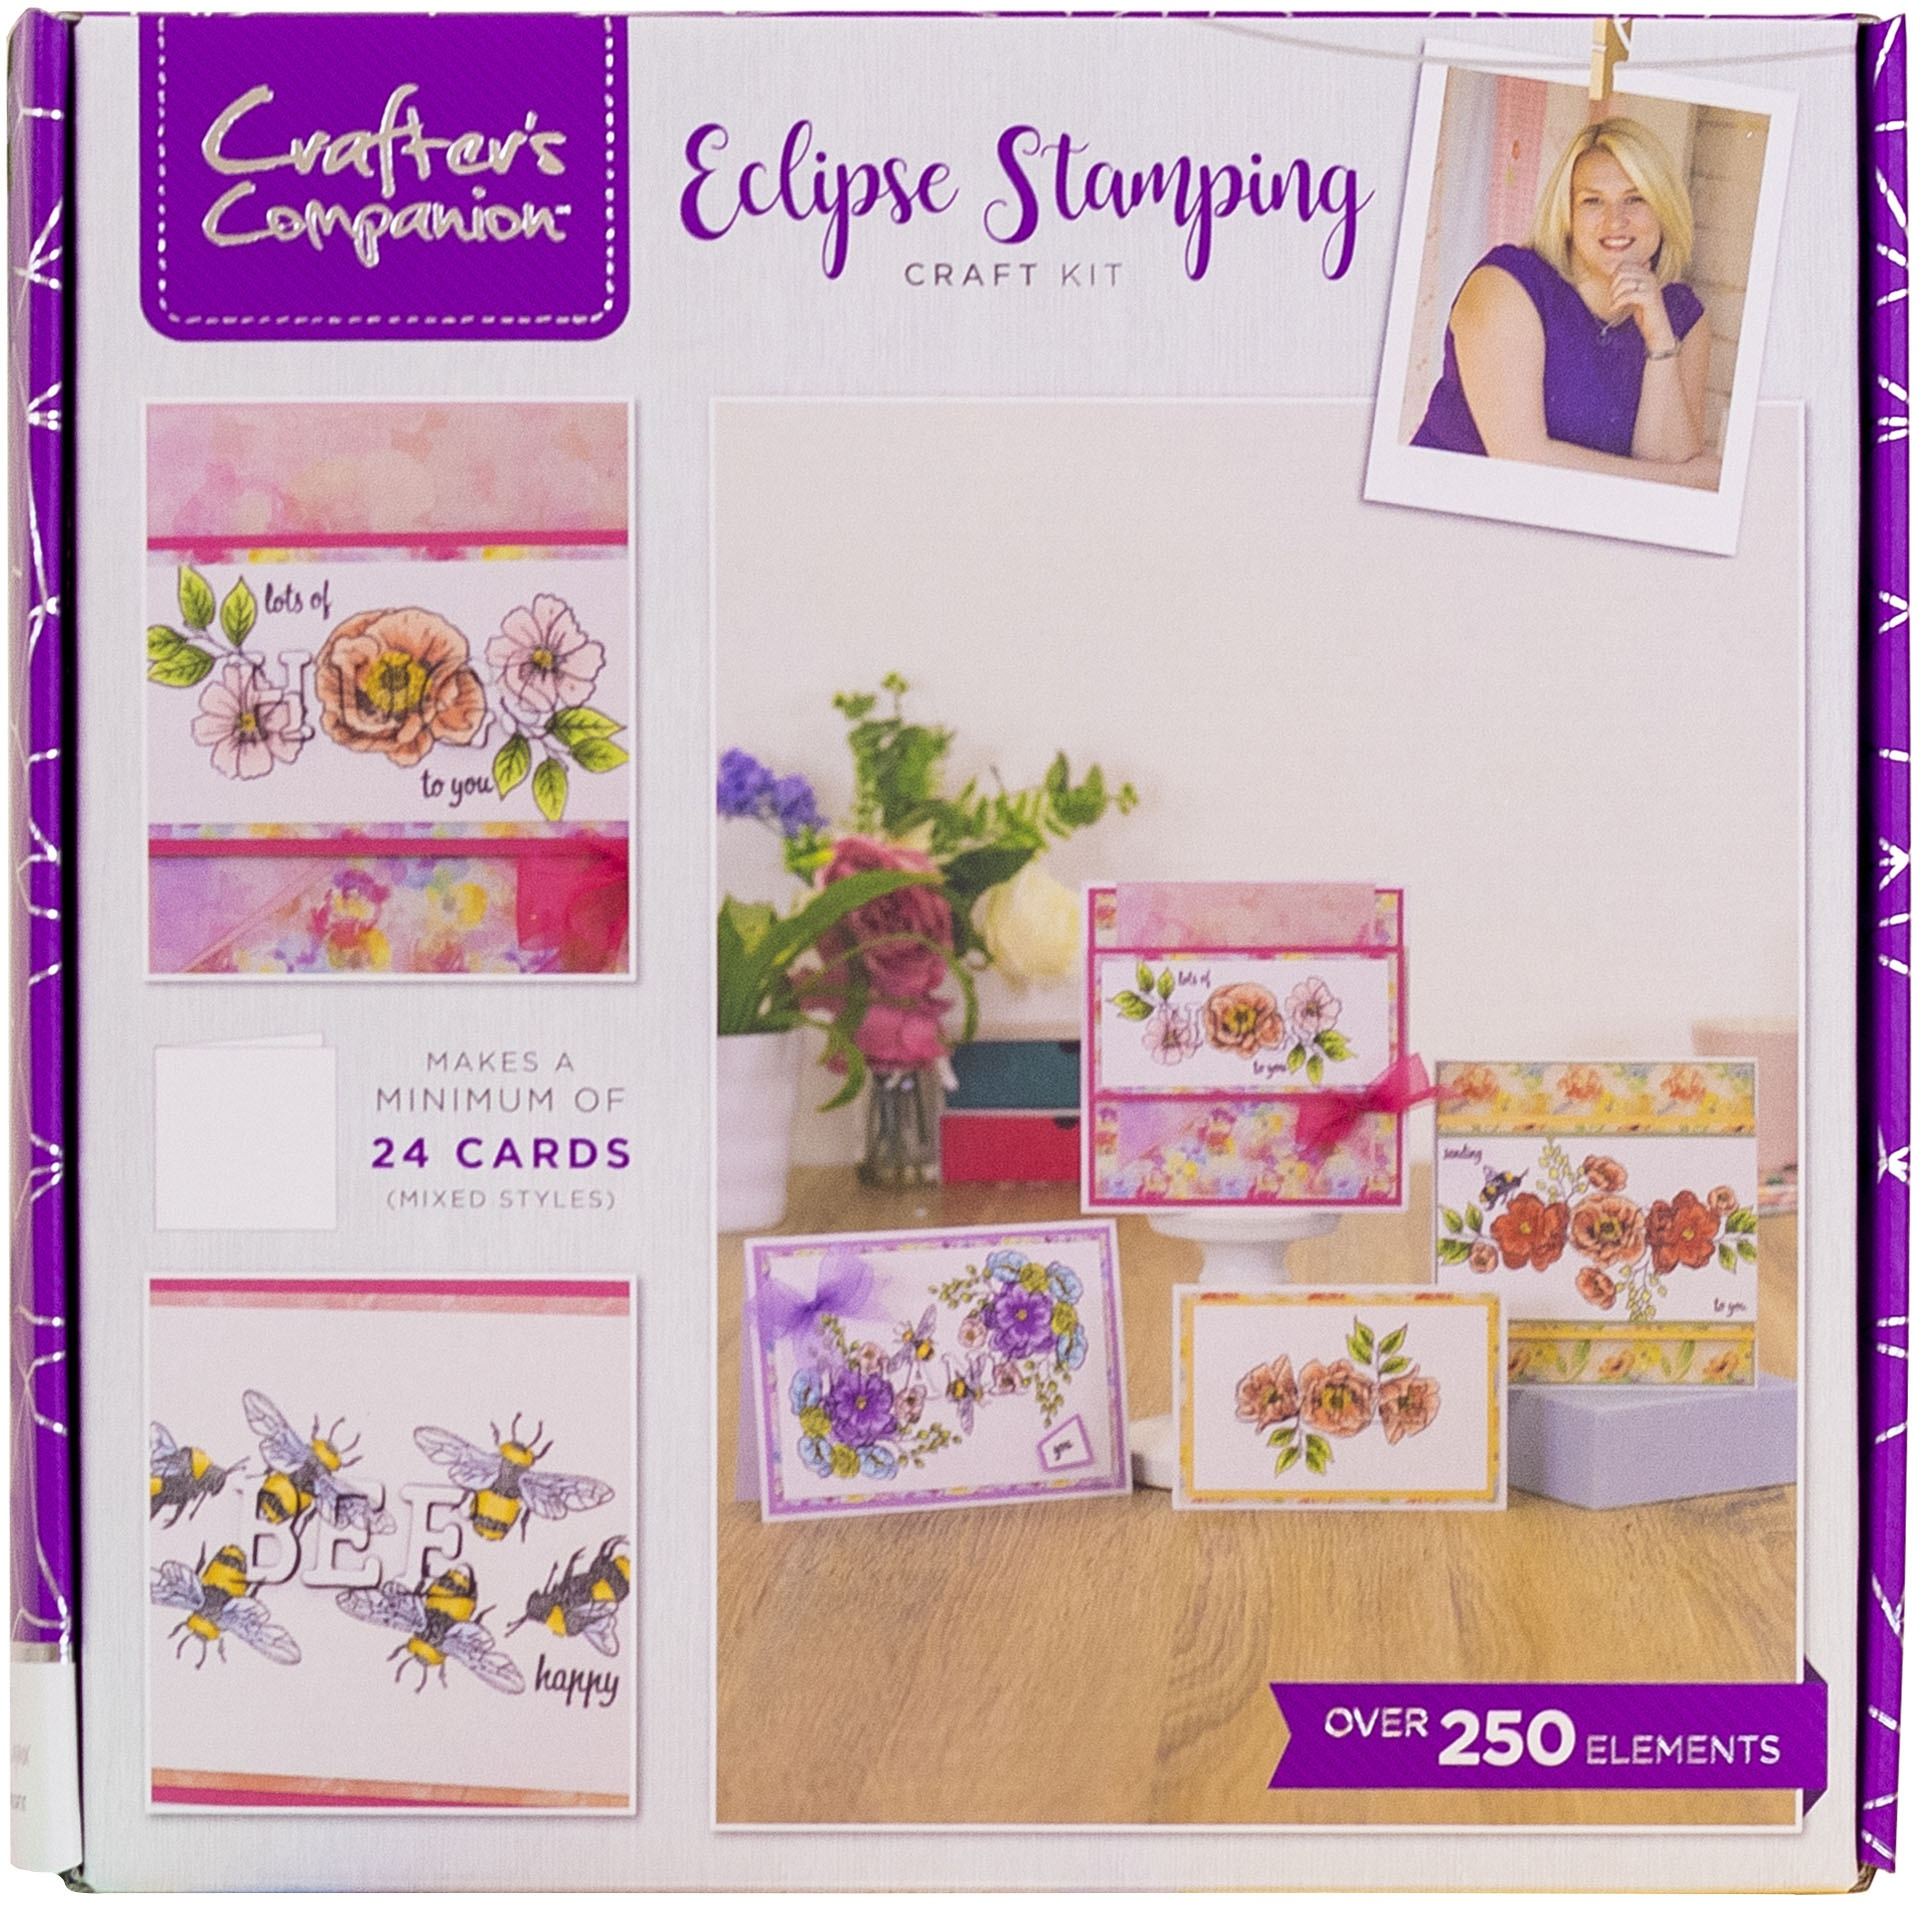 Crafter's Companion Craft Box Kit